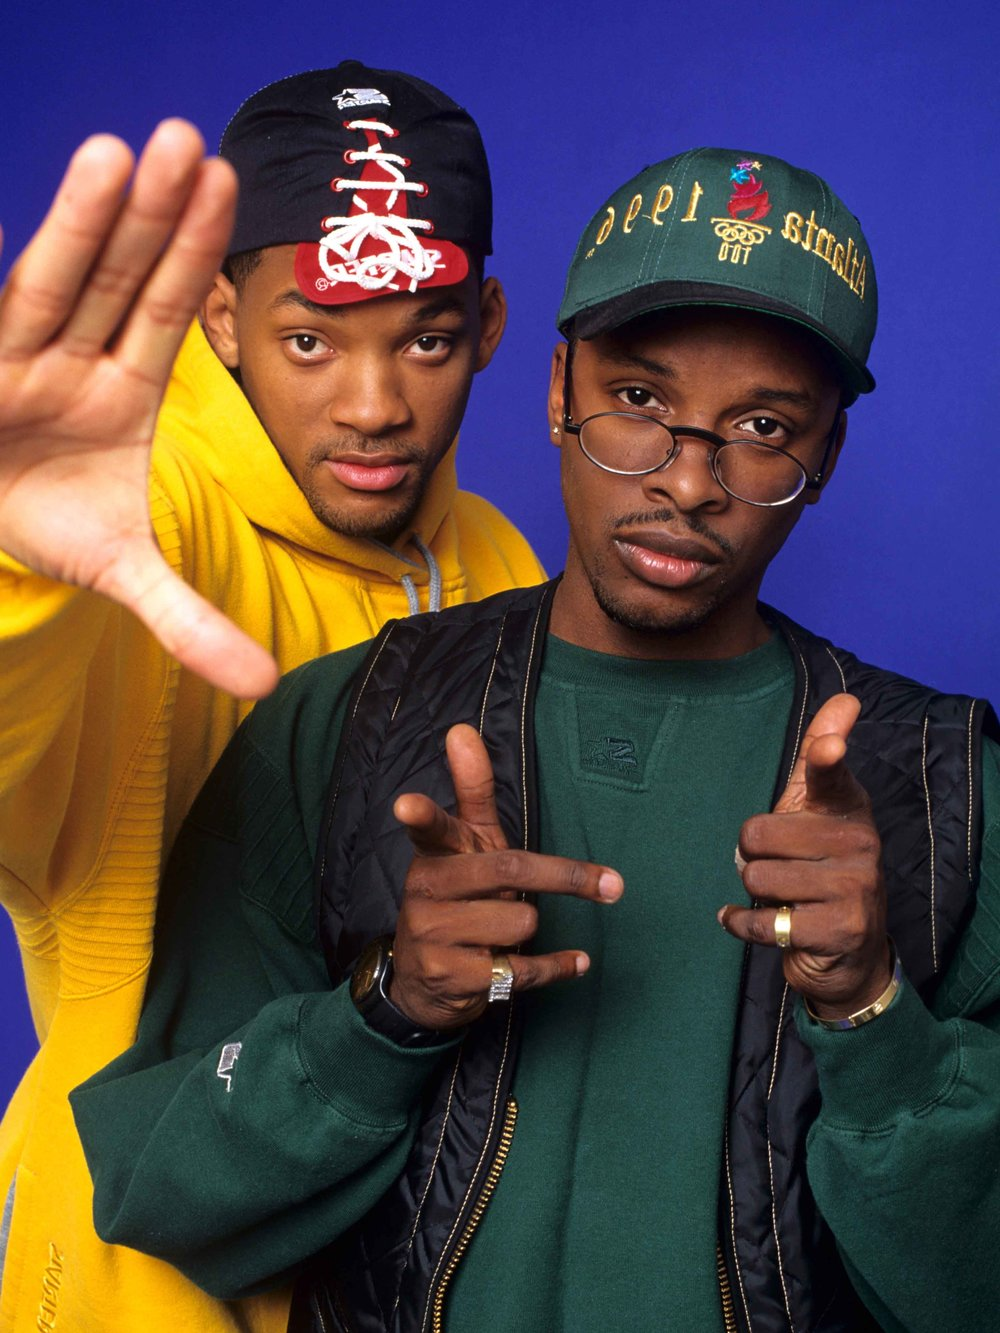 Will-Smith-and-Jazzy-Jeff-feat.jpg